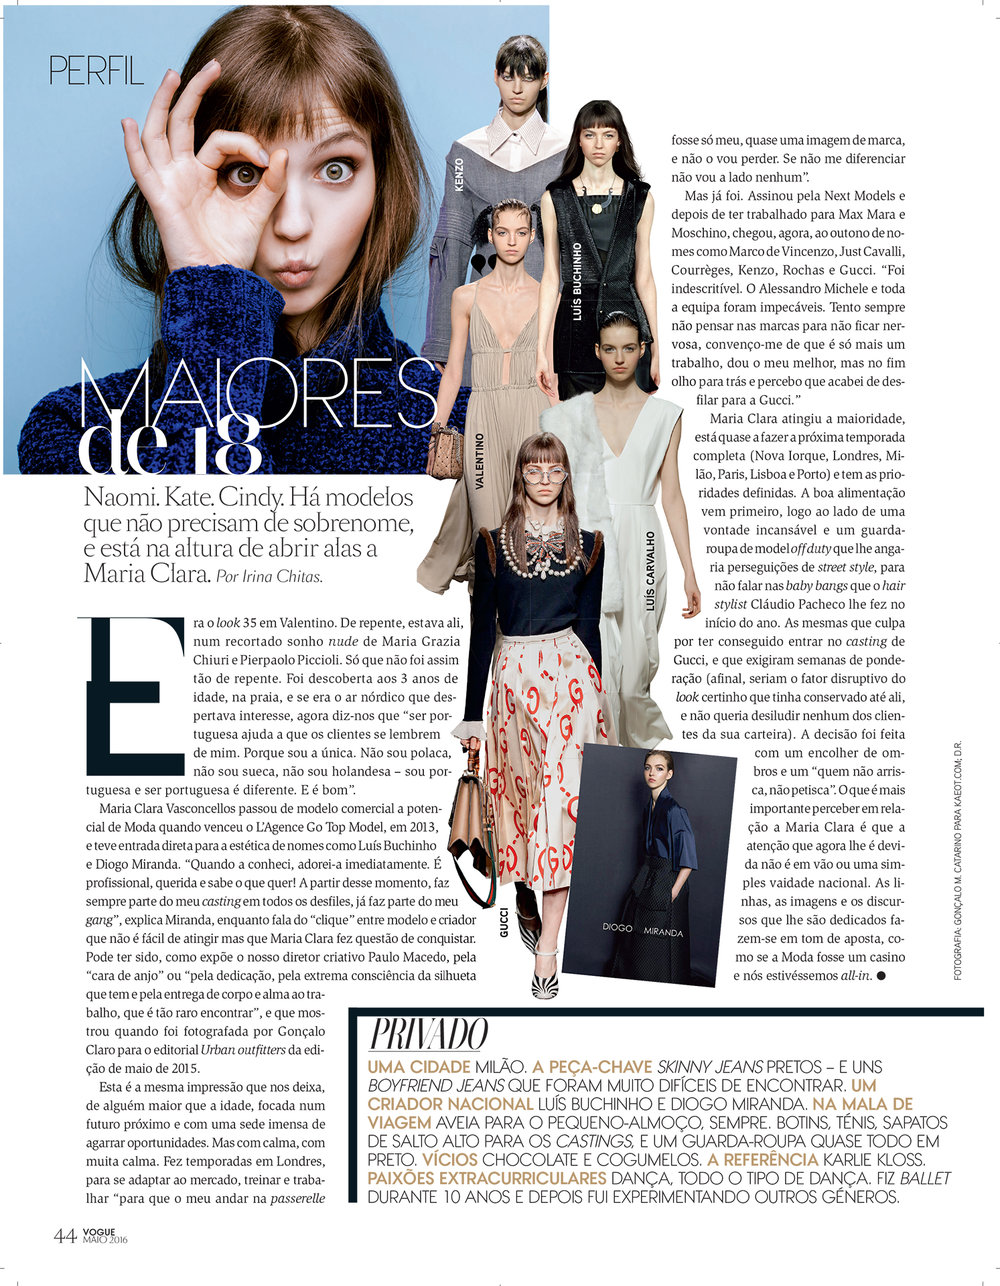 Maria Clara shot for KAEOT and featured in VOGUE Portugal